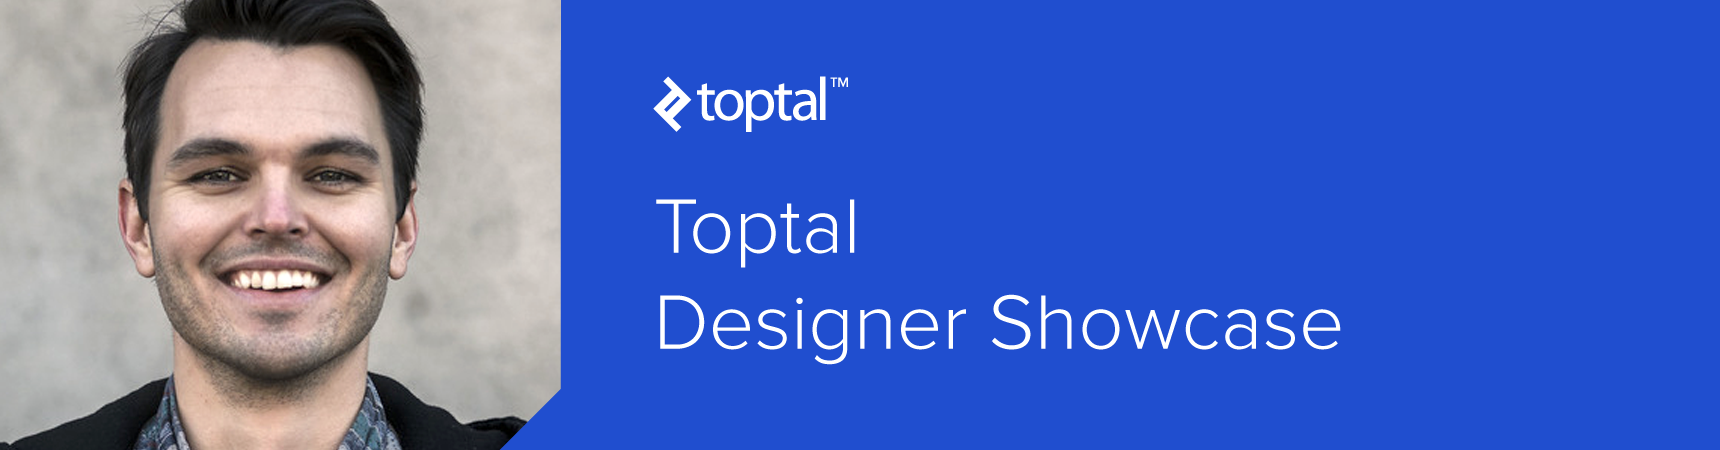 Toptal designer showcase